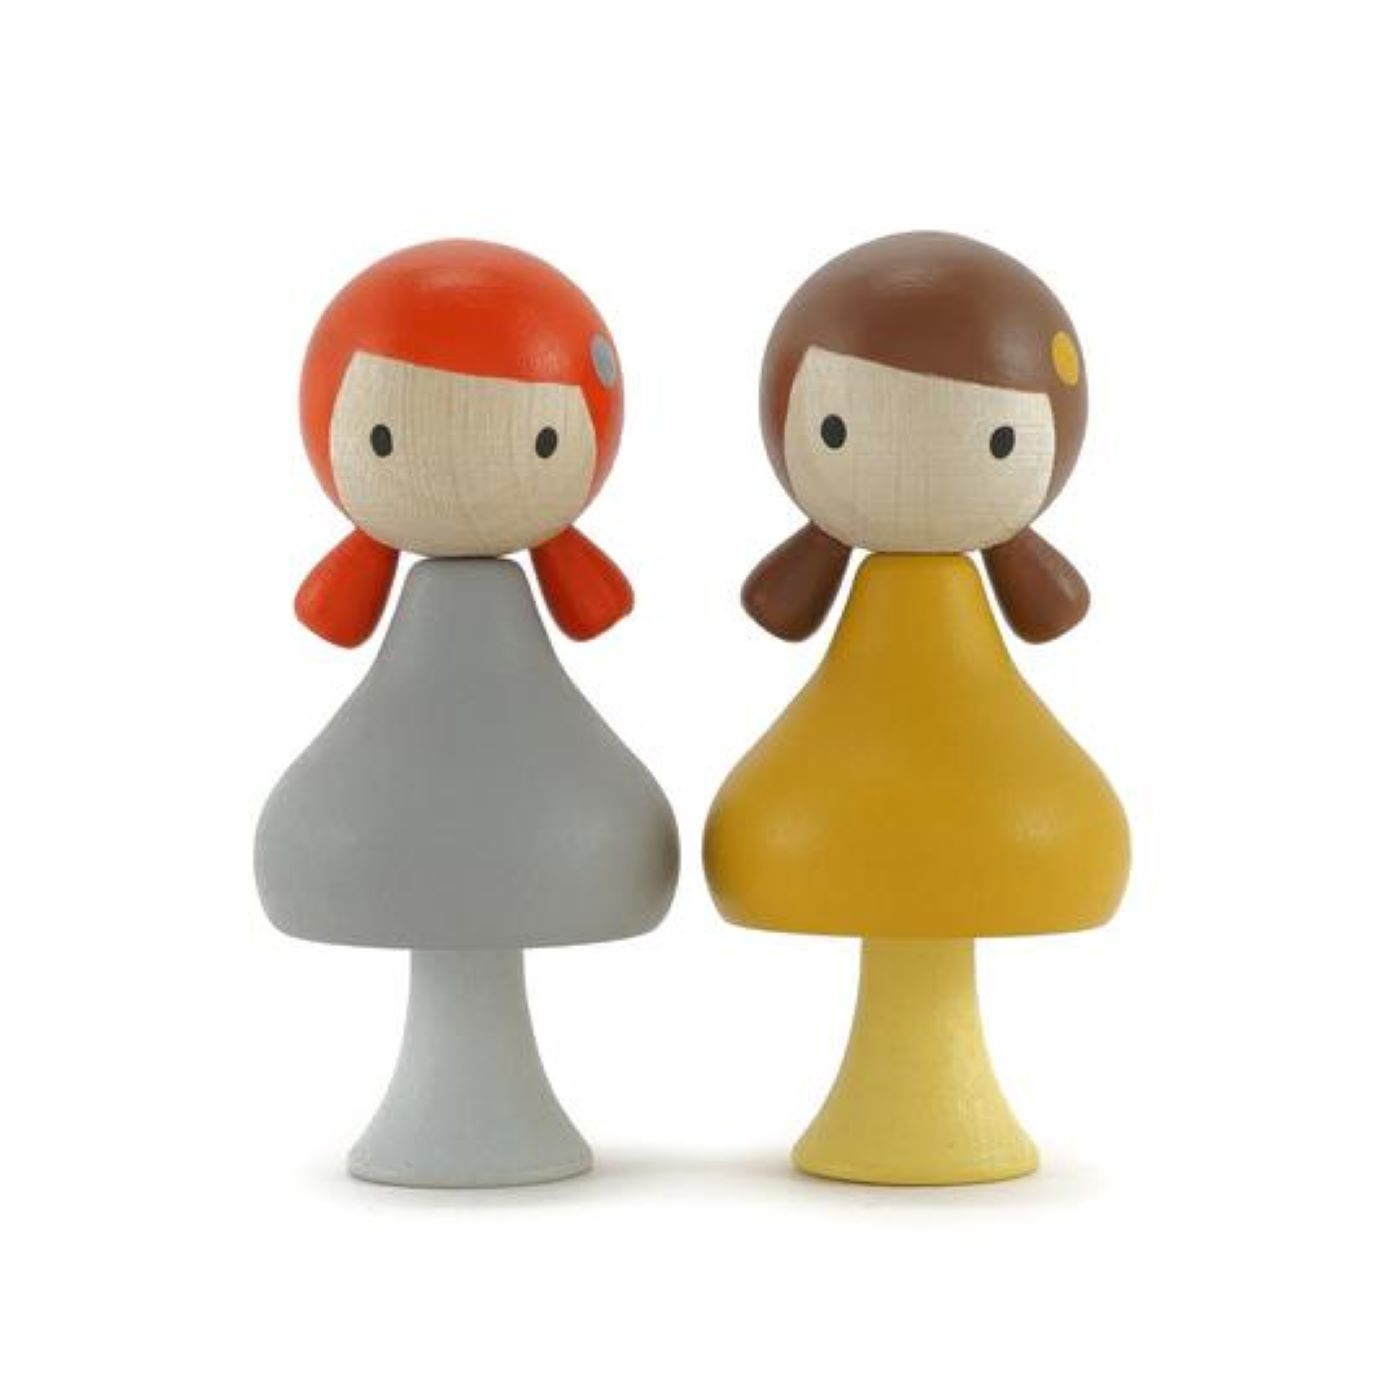 Clicques - Emma and June Wooden Figurines